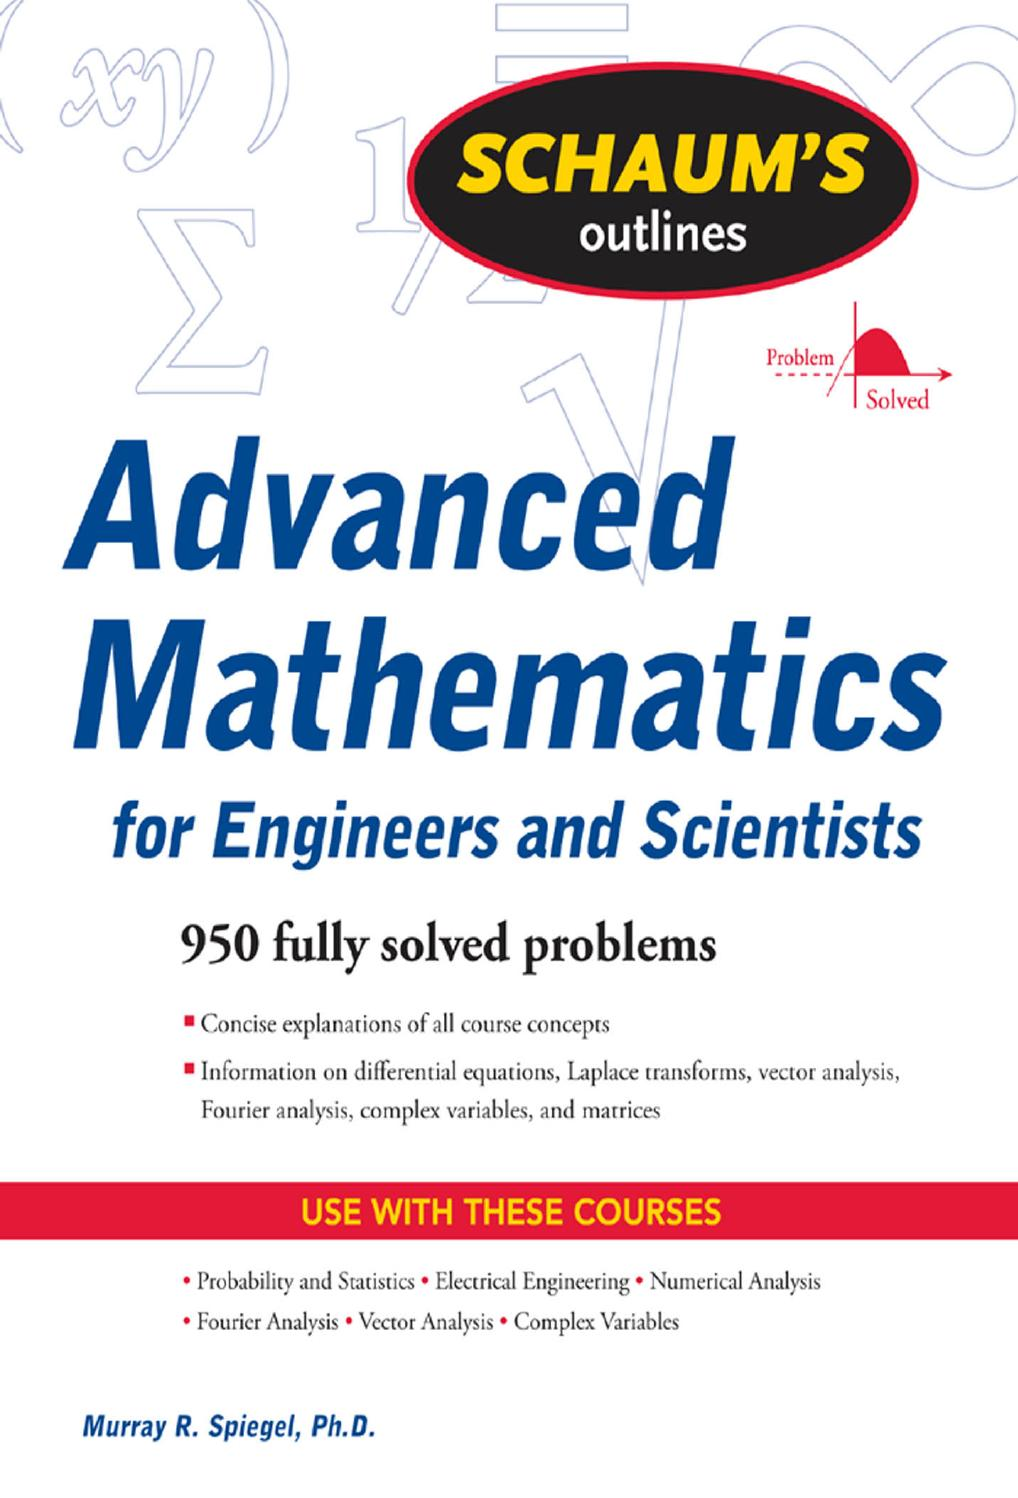 Schaum advanced mathematics for engineer scientists pdf by ari issuu fandeluxe